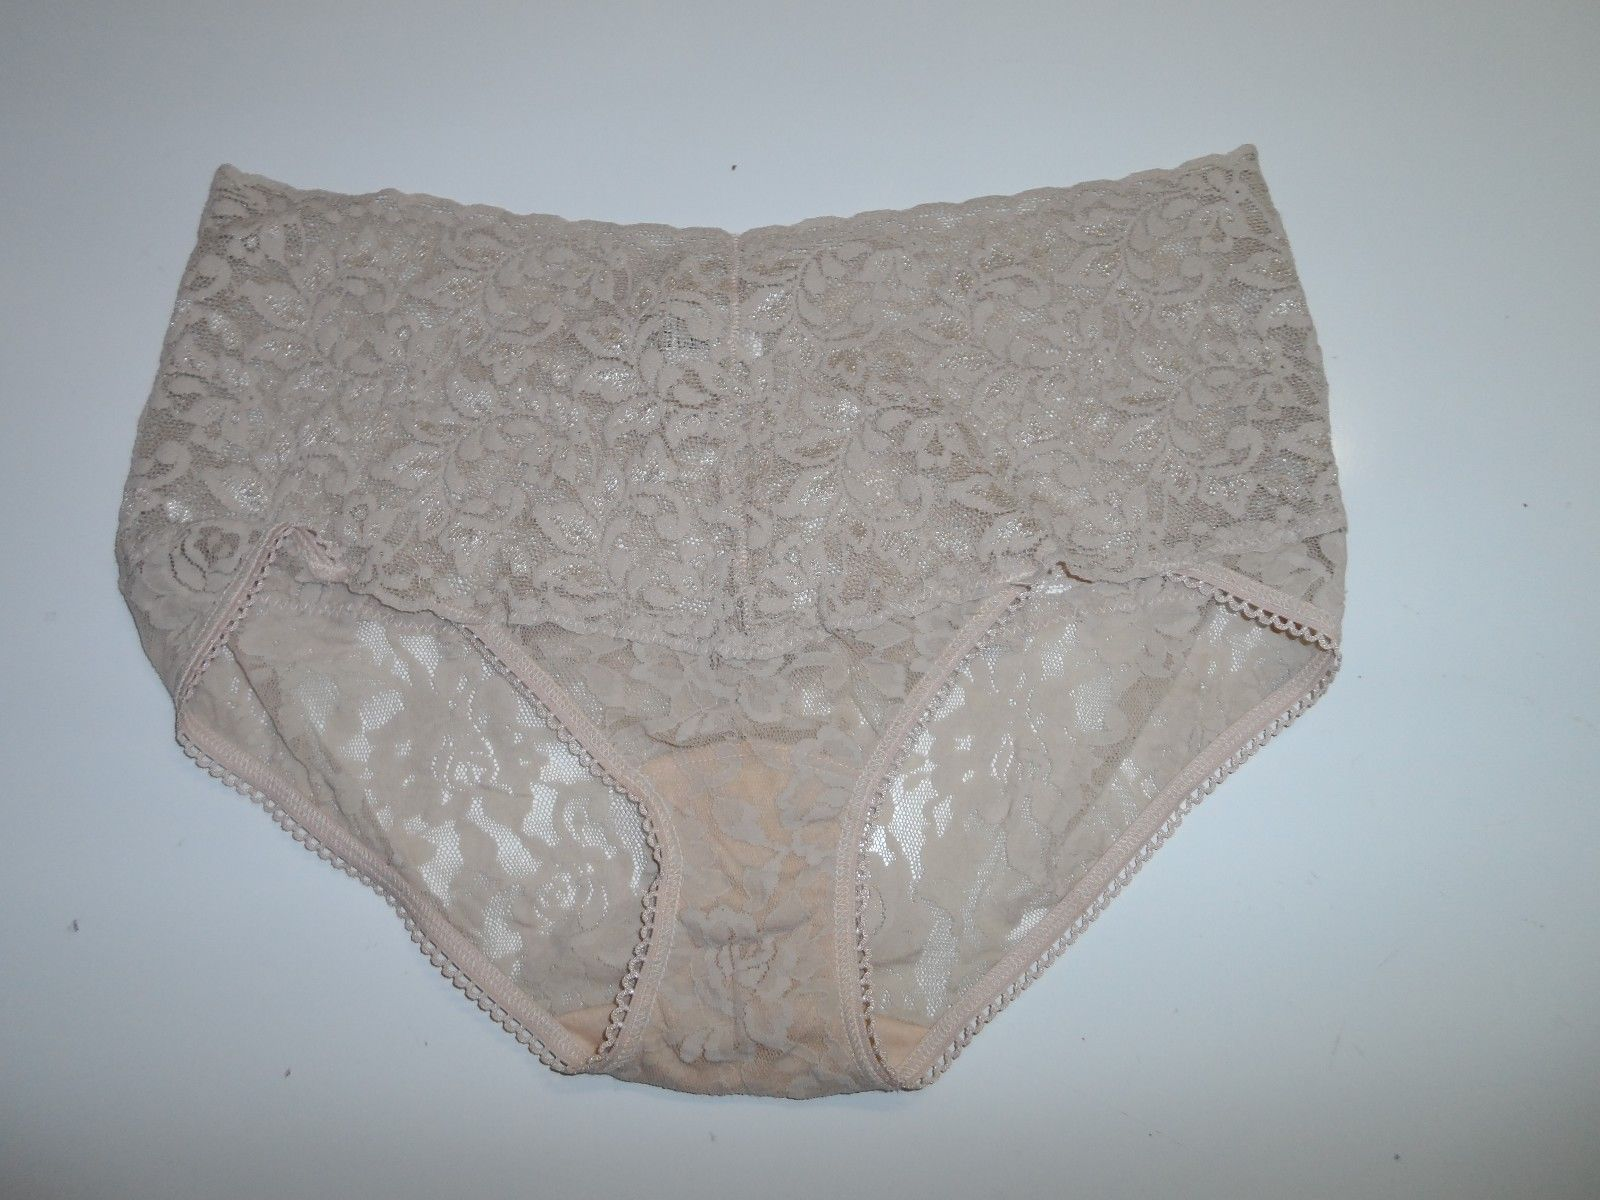 f521cb064c27 Hanky Panky Signature Lace Retro V-kini and 50 similar items. S l1600